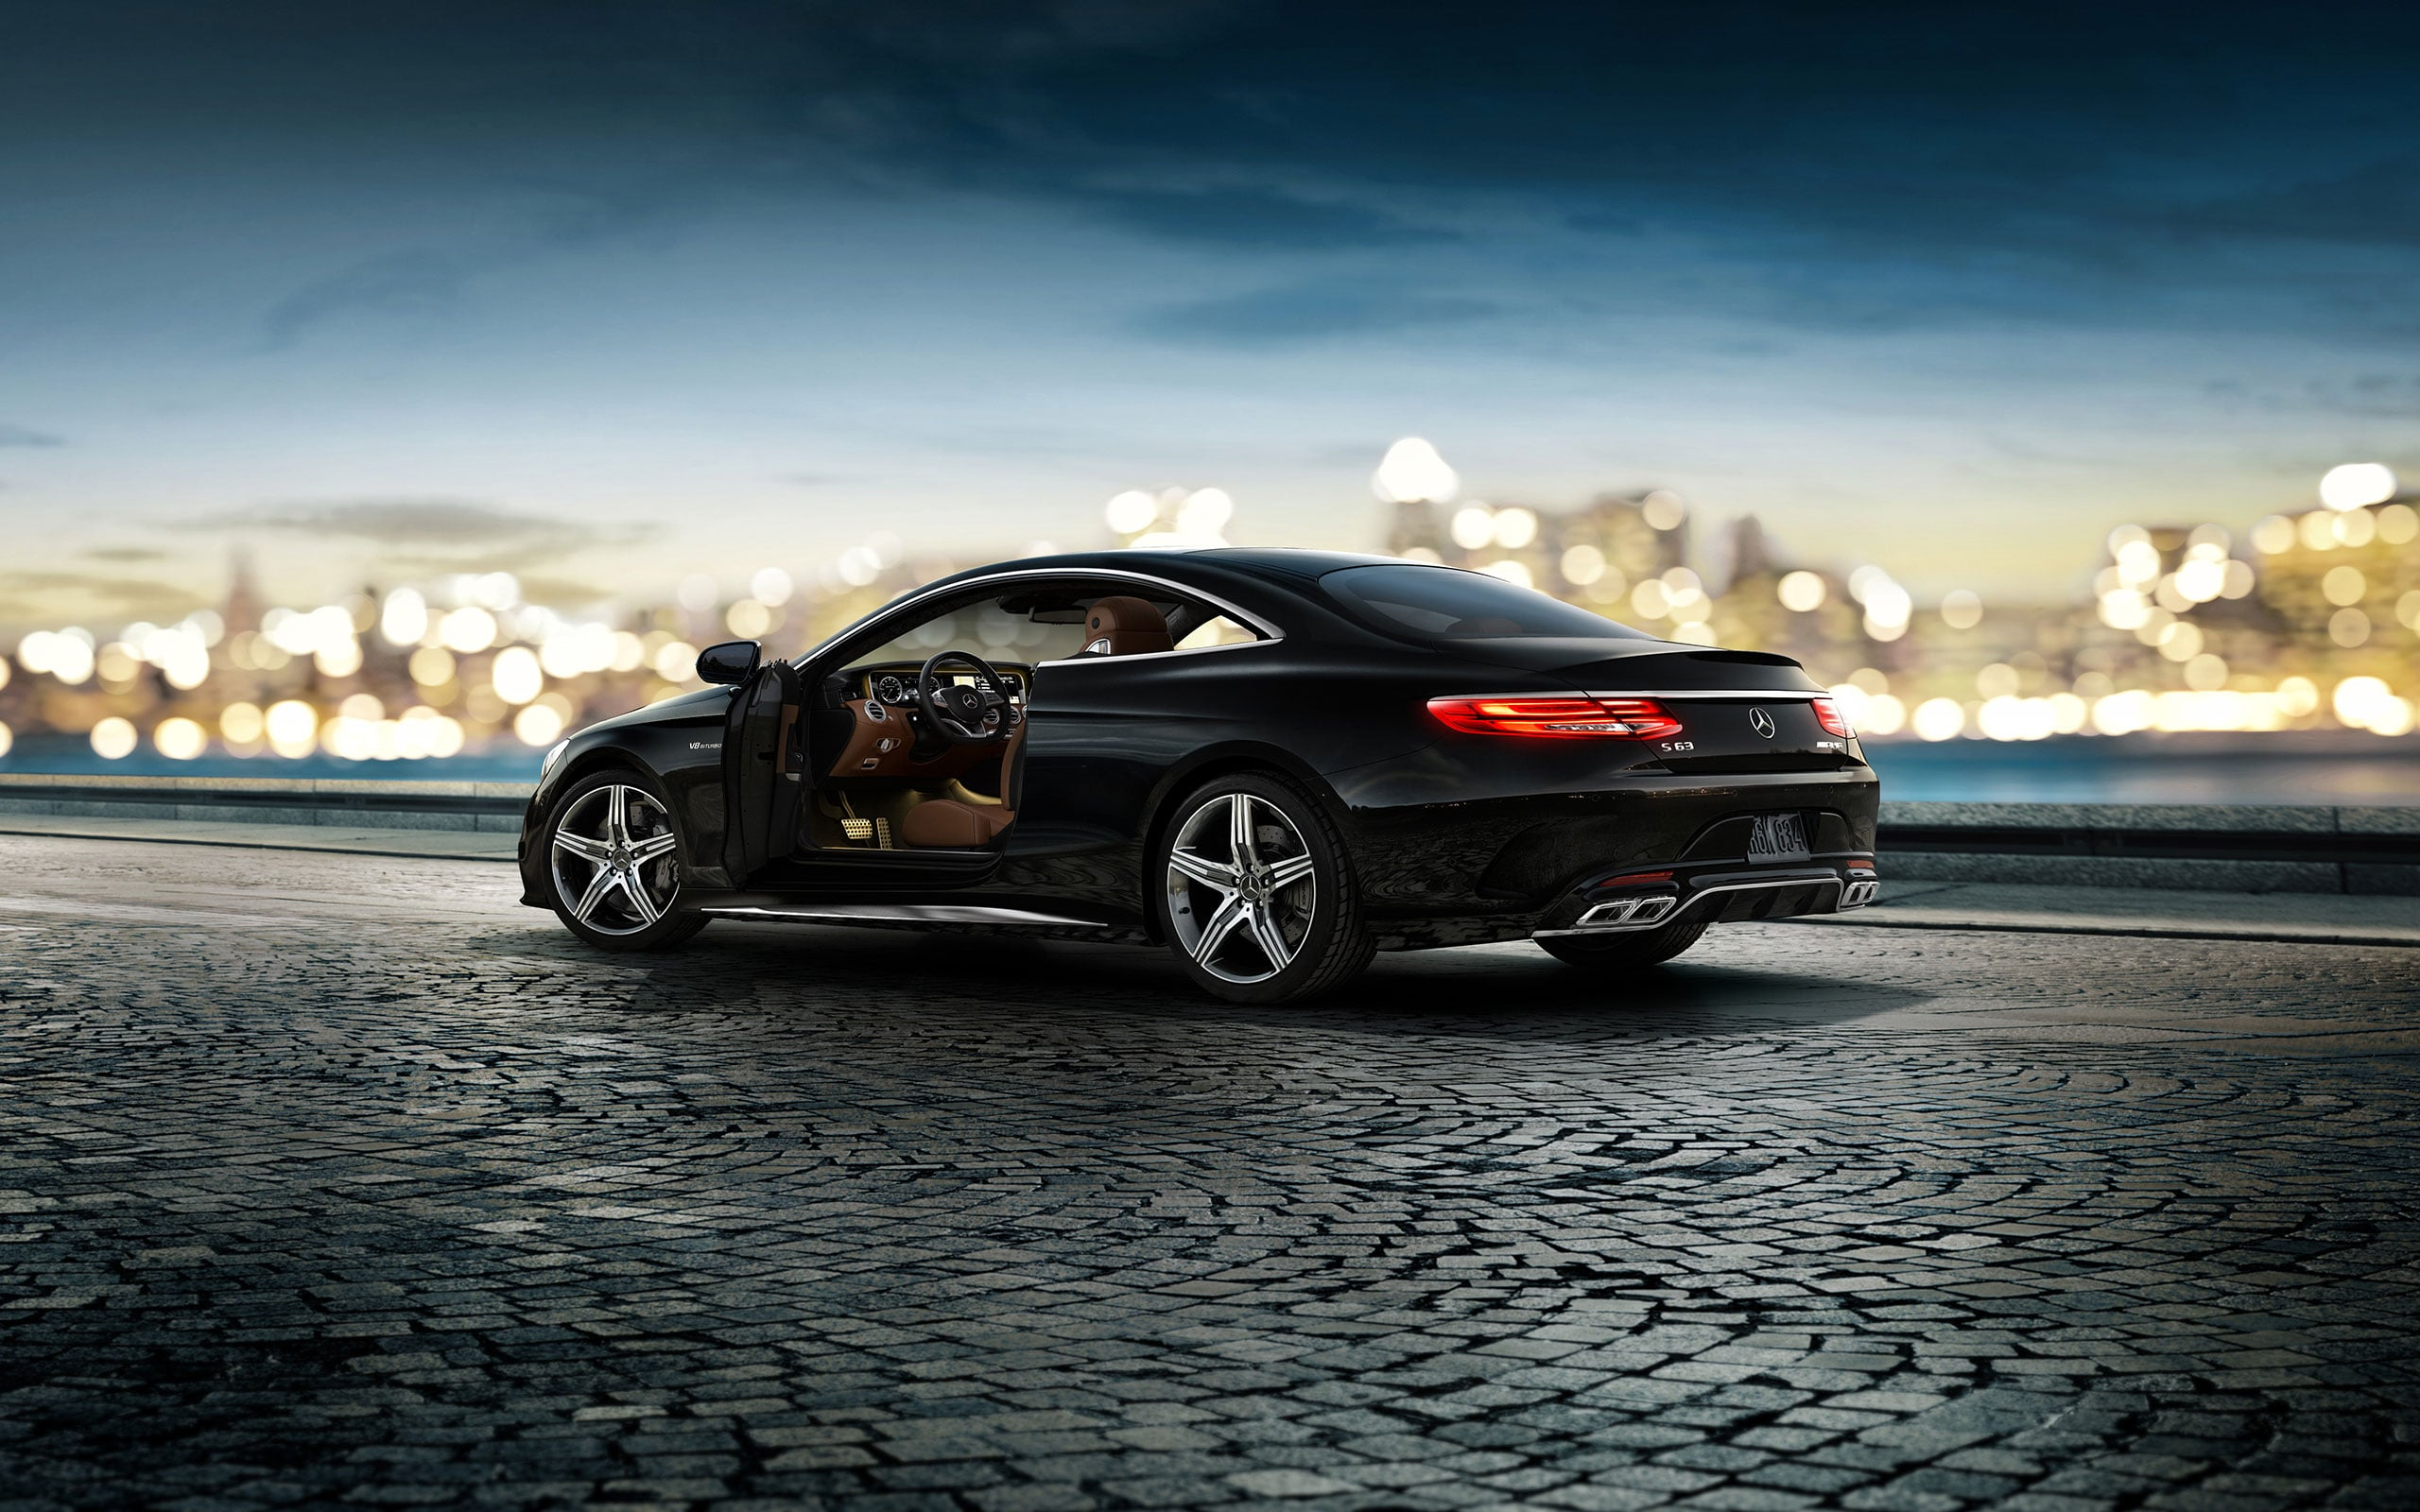 Mercedes Benz AMG S63 Coupe wallpapers HD Download 2560x1600